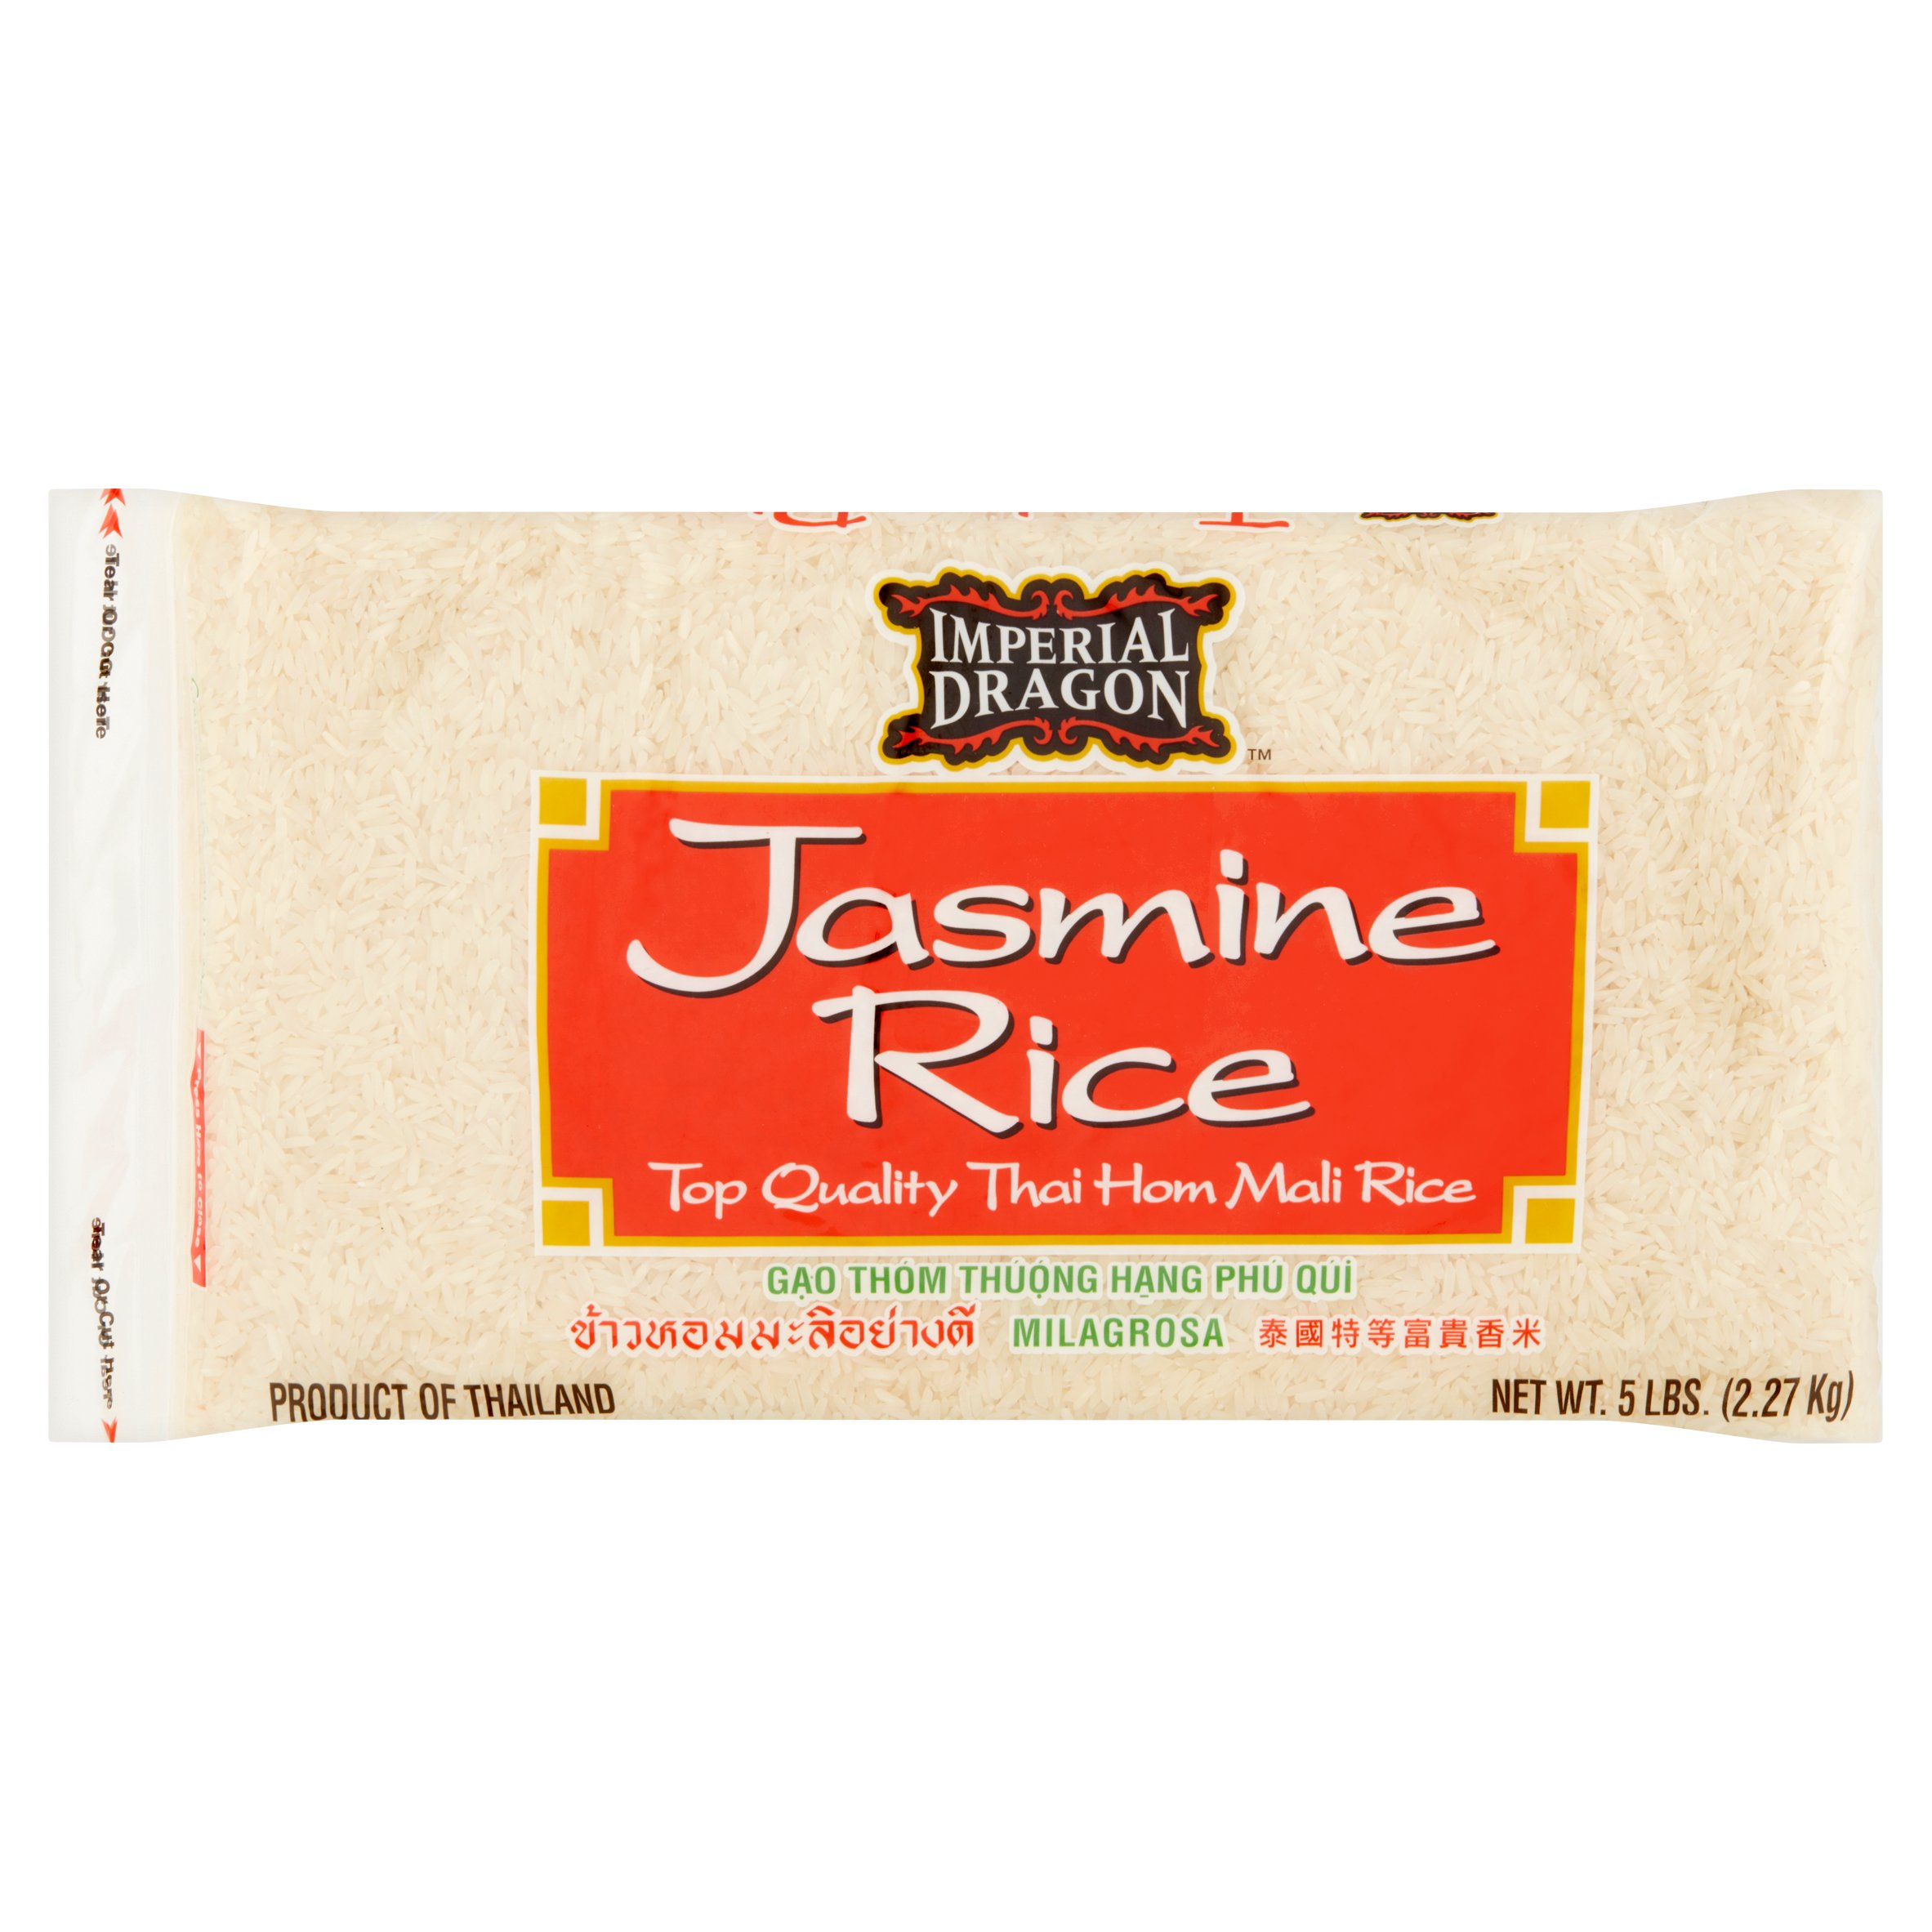 Imperial Dragon Thai Hom Mali Jasmine Rice, 5 lb